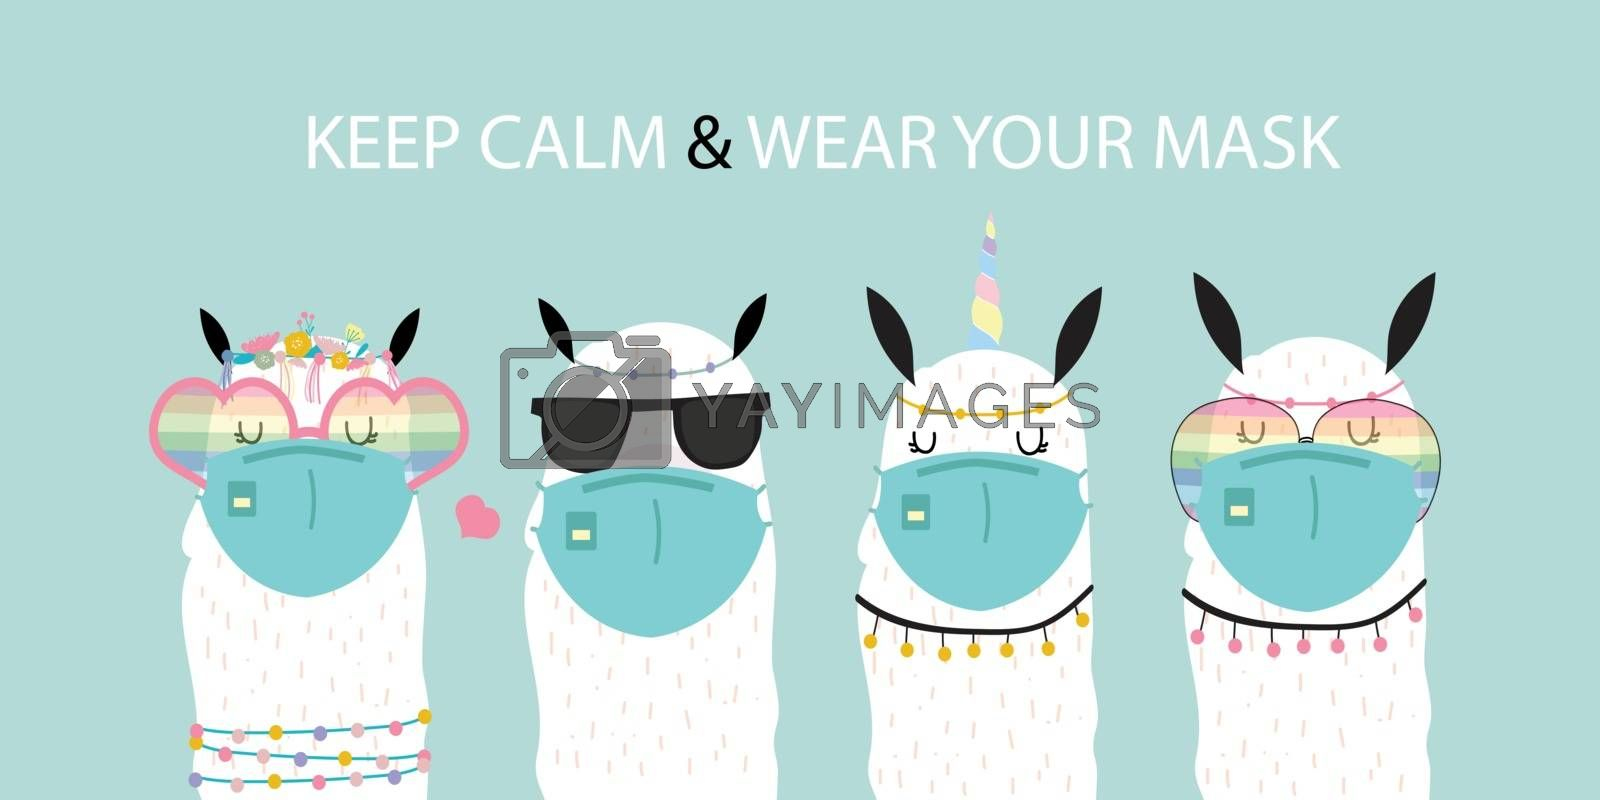 Cute animal object collection with llama wear mask.Vector illustration for prevention the spread of bacteria,coronviruses.Keep calm and wear your mask